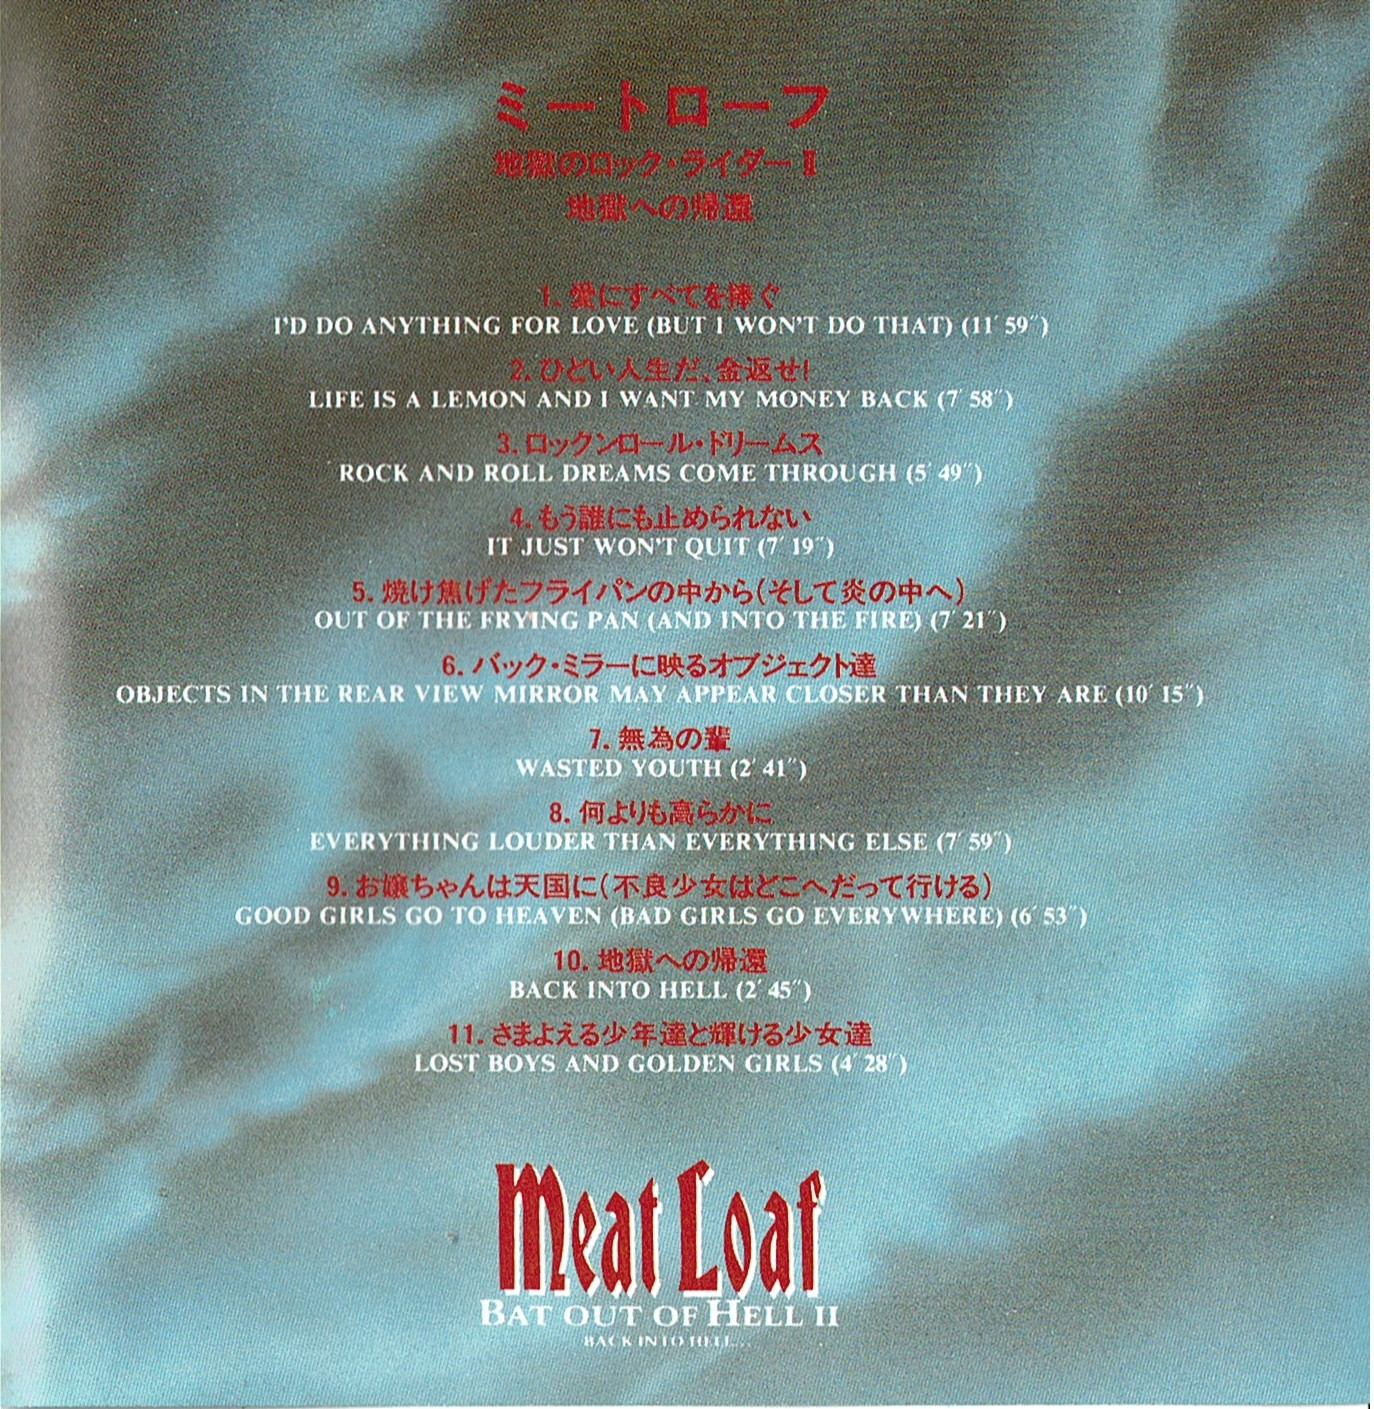 Meat Loaf - Bat Of Of Hell II, Back Into Hell (Special Japan Ver) VJCP-28167